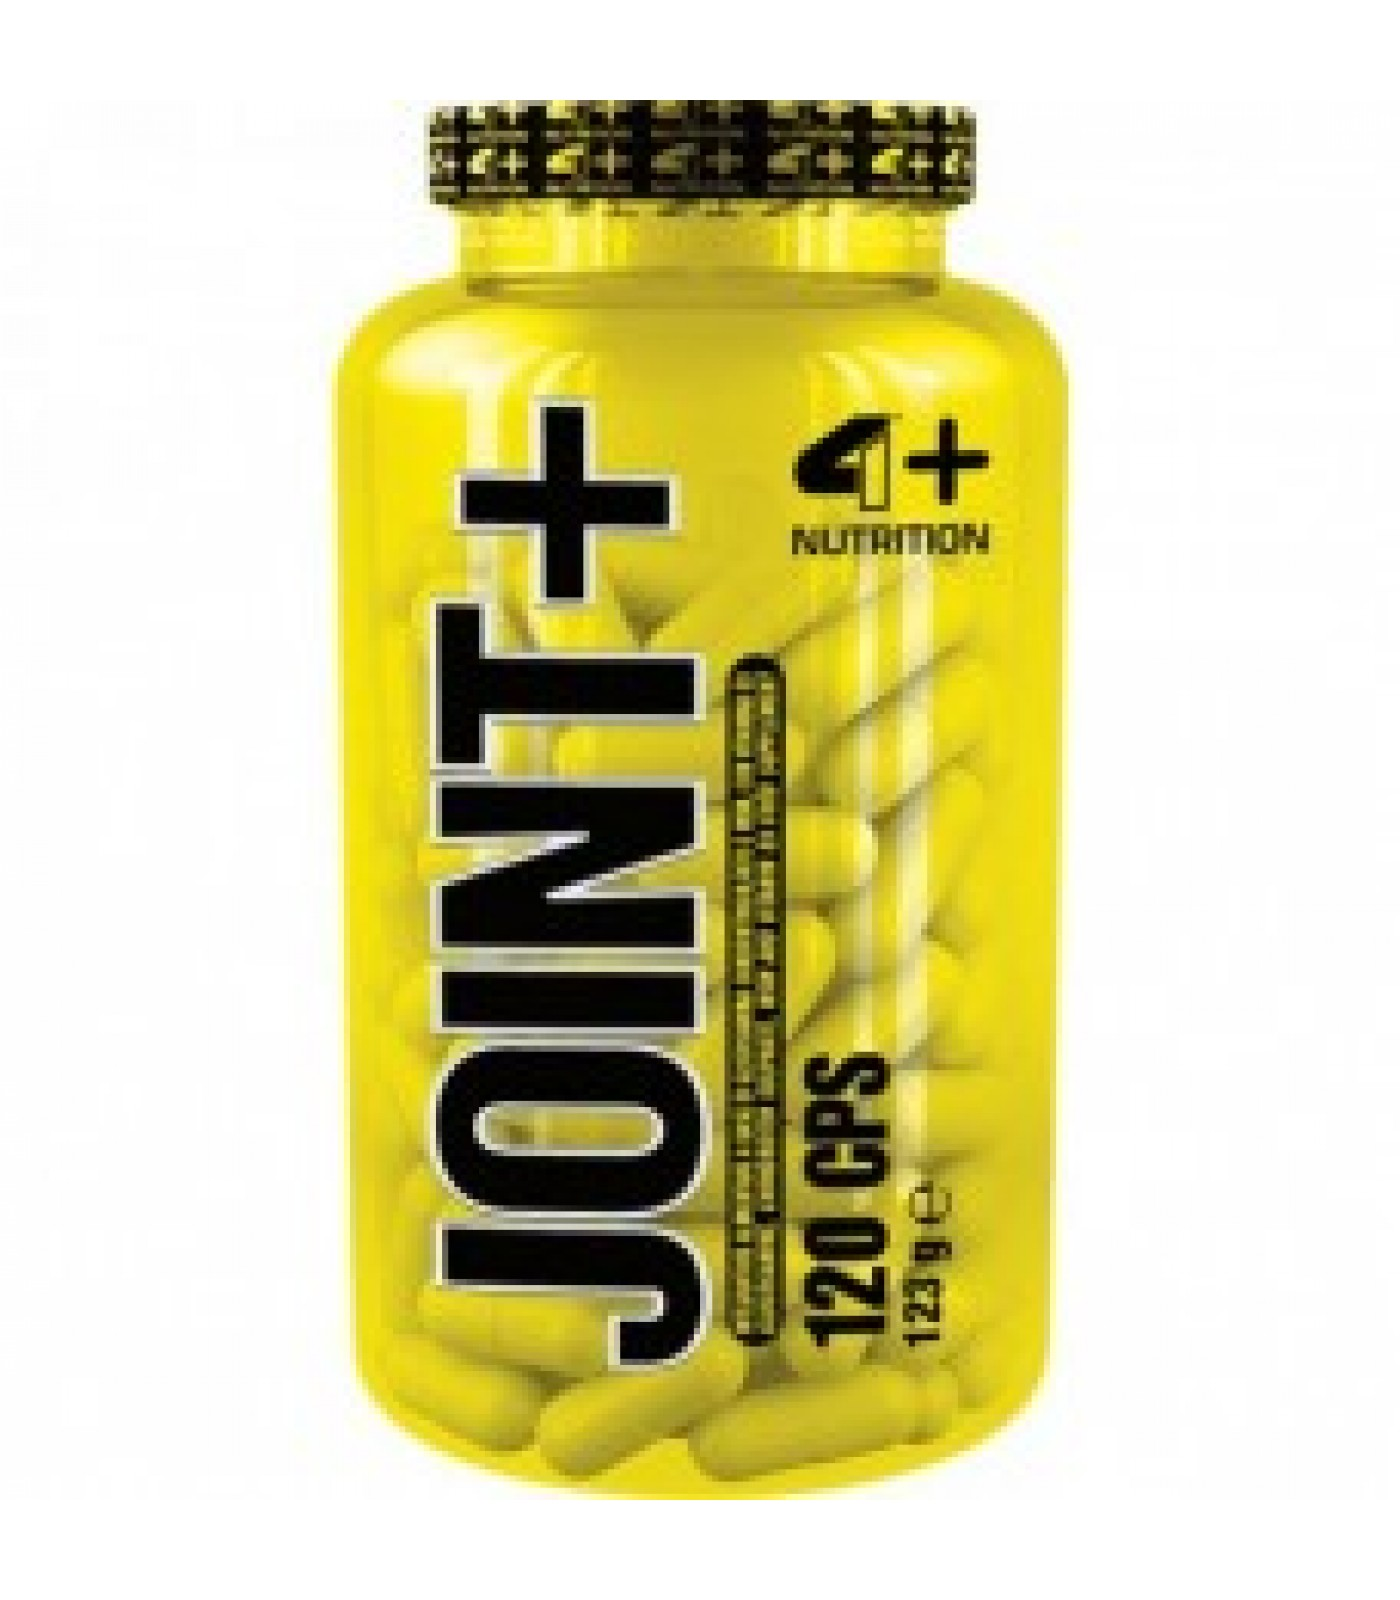 4+ Nutrition JOINT+ 120 капсули.